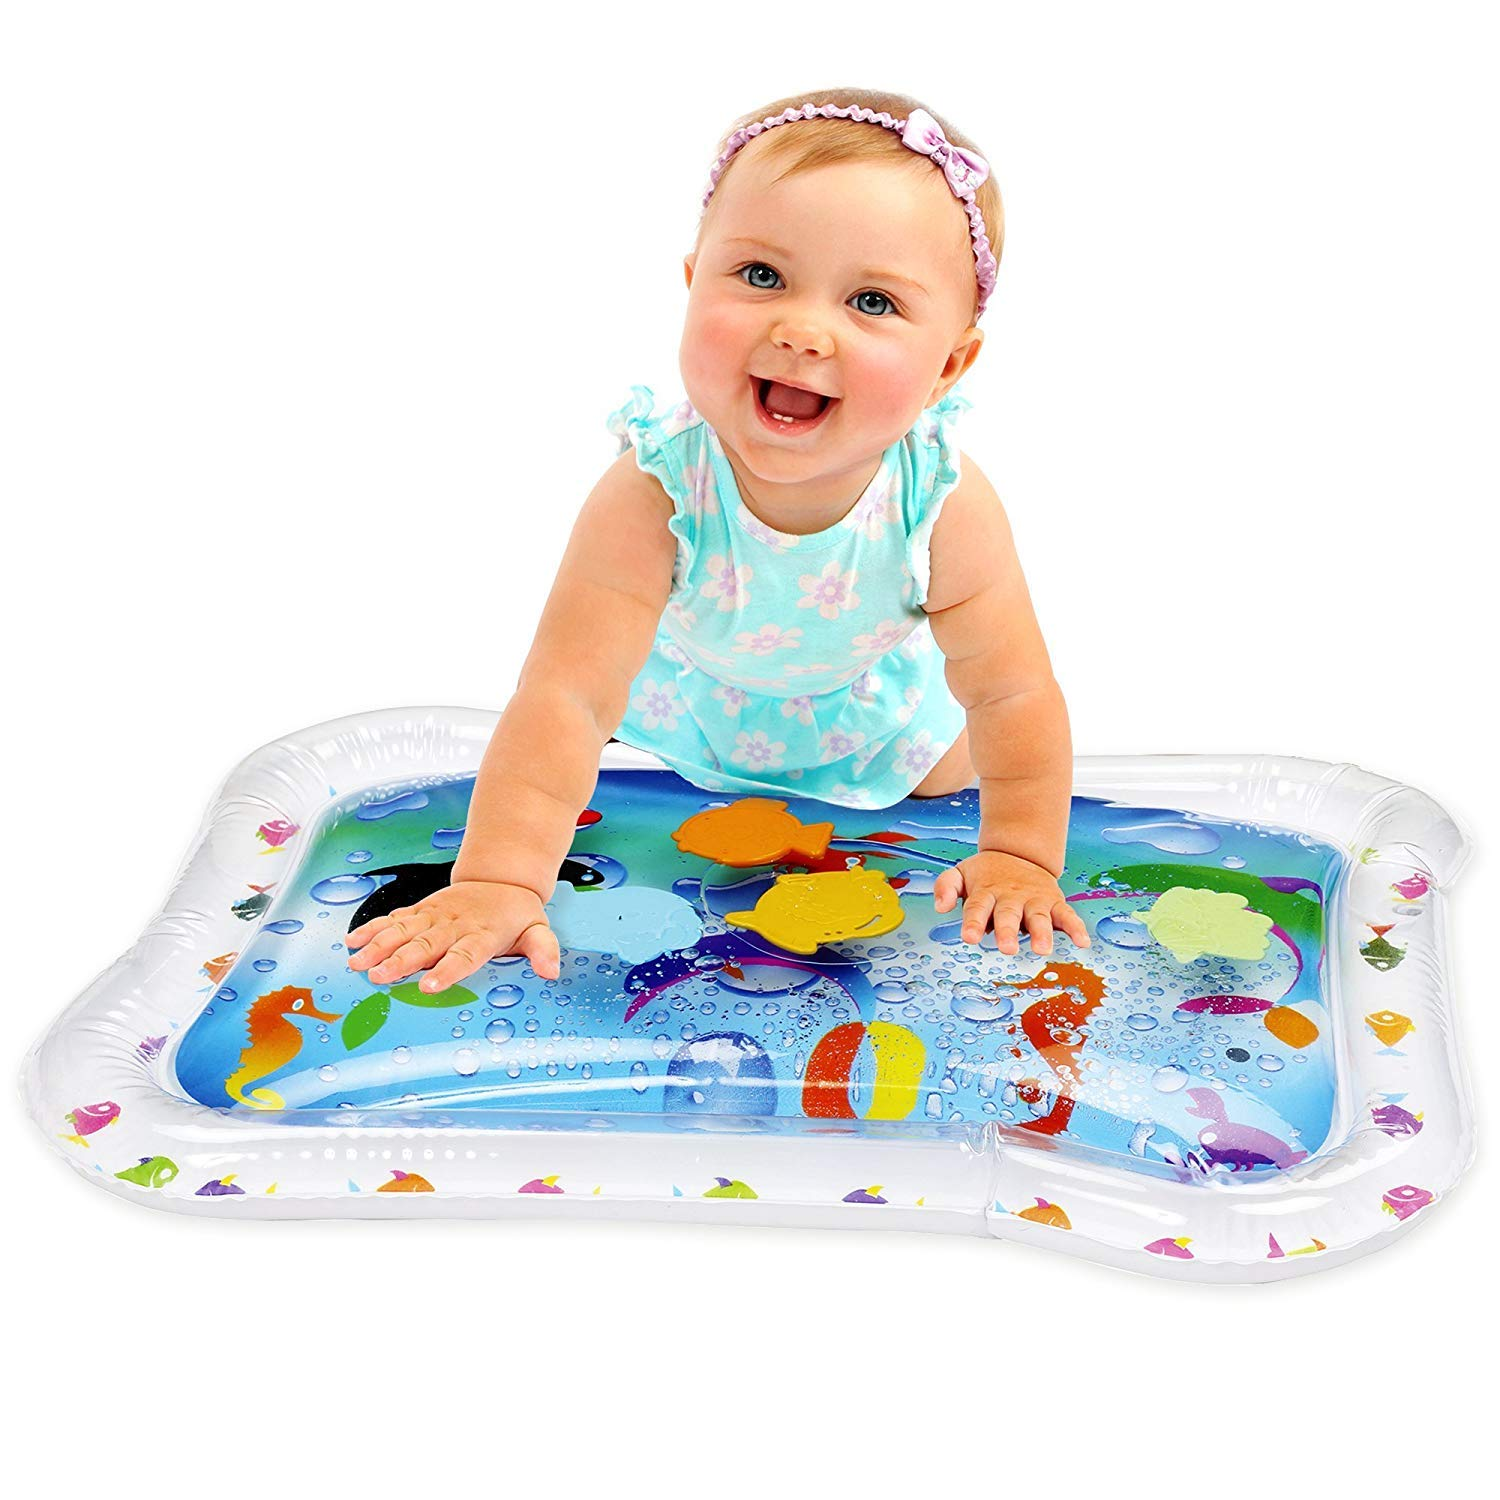 Hoovy Baby Water Play Mat, Fill N Fun Water Play Mat for Children and Infants, Fun Colorful, Play Mat Baby